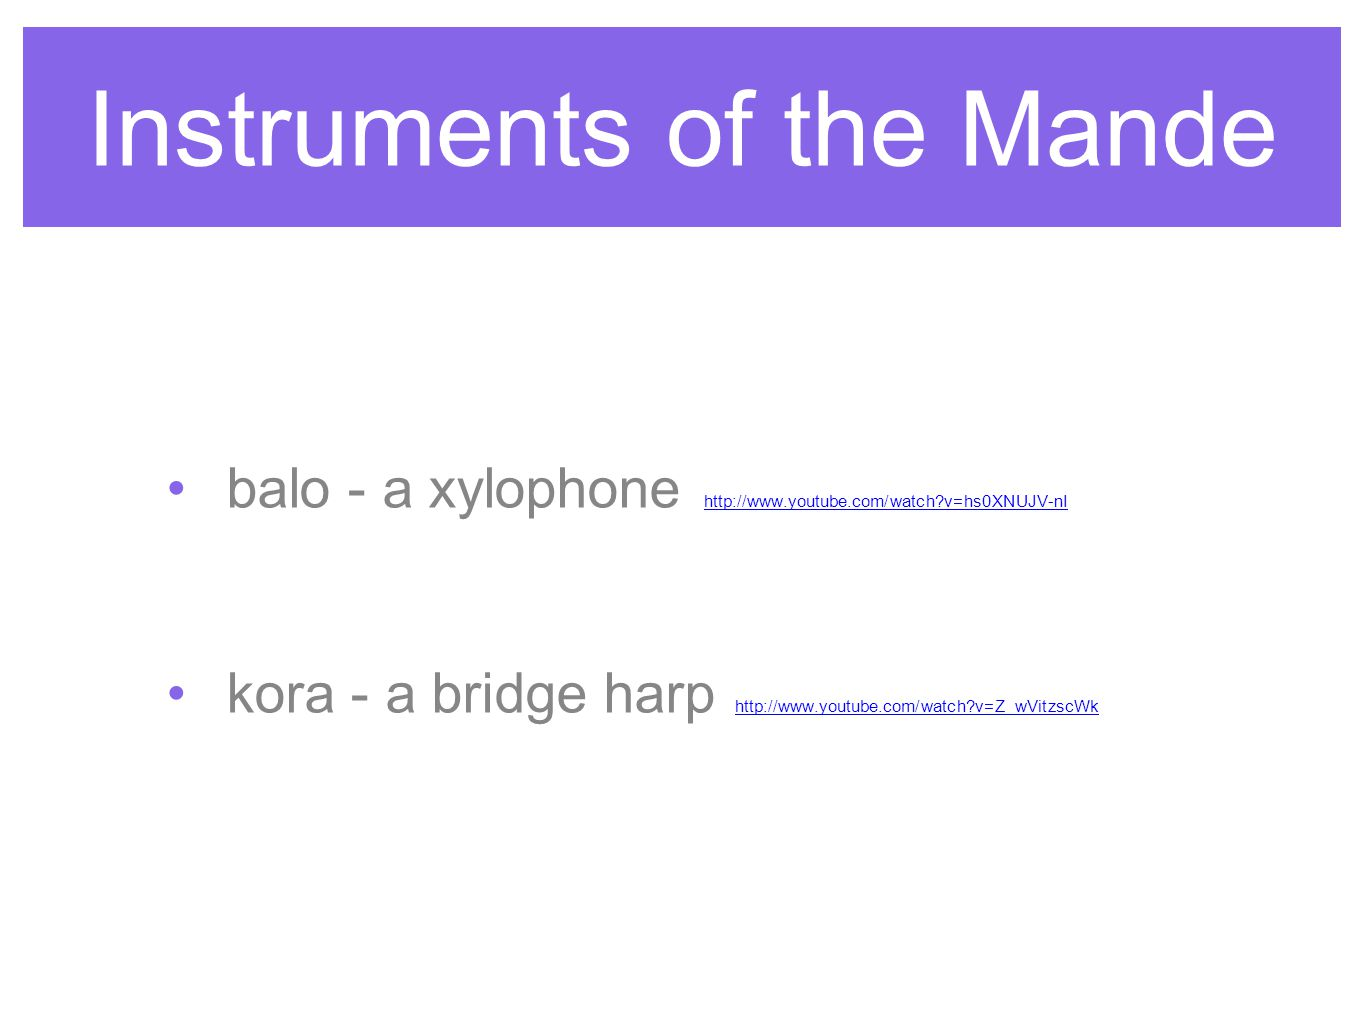 Instruments of the Mande balo - a xylophone http://www.youtube.com/watch?v=hs0XNUJV-nIhttp://www.youtube.com/watch?v=hs0XNUJV-nI kora - a bridge harp http://www.youtube.com/watch?v=Z_wVitzscWkhttp://www.youtube.com/watch?v=Z_wVitzscWk